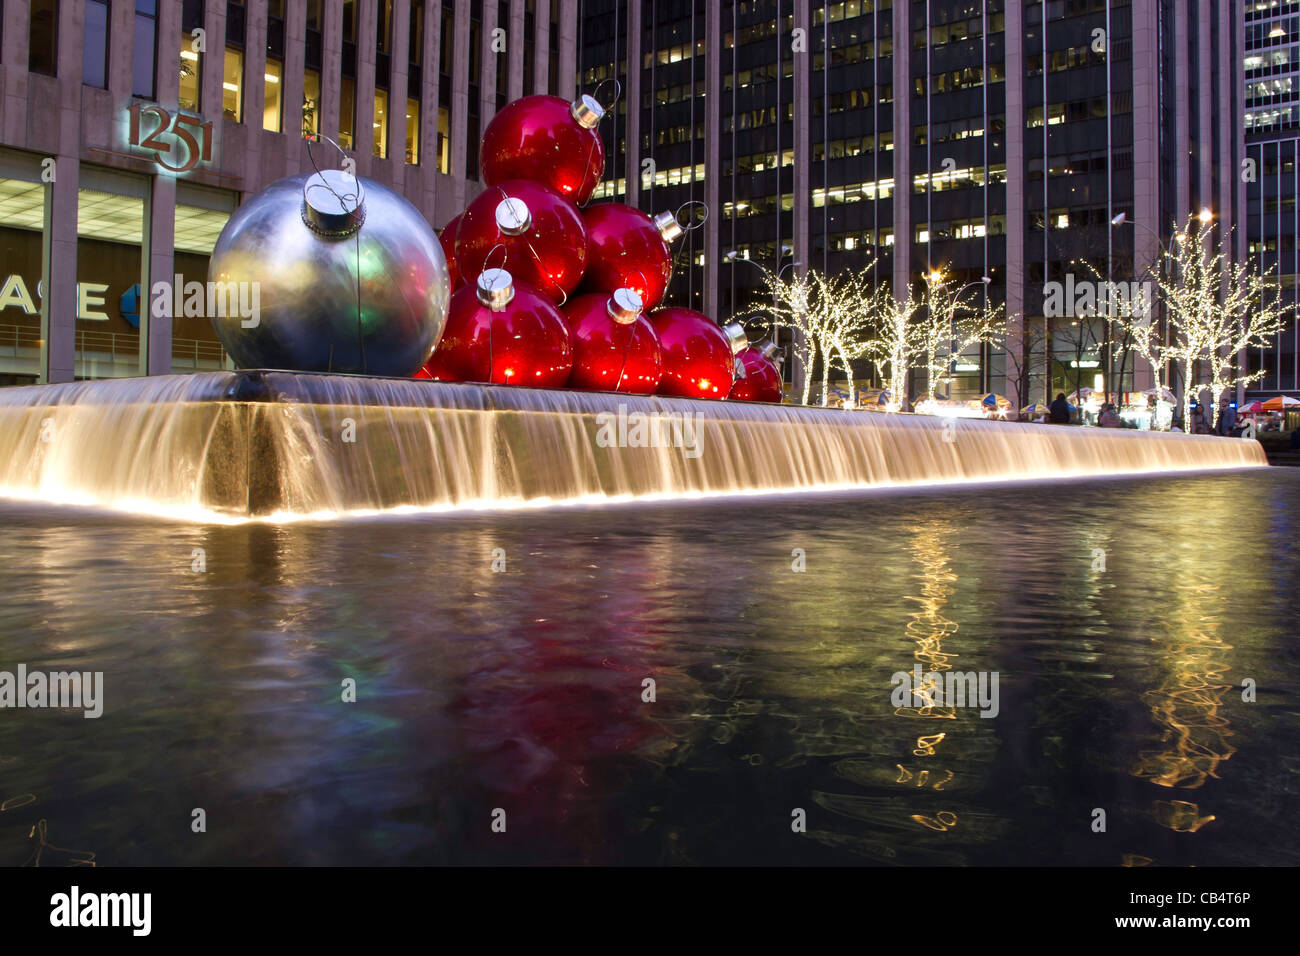 Giant Christmas Ornaments, Reflecting Pool, 1251 Avenue of the Americas, NYC